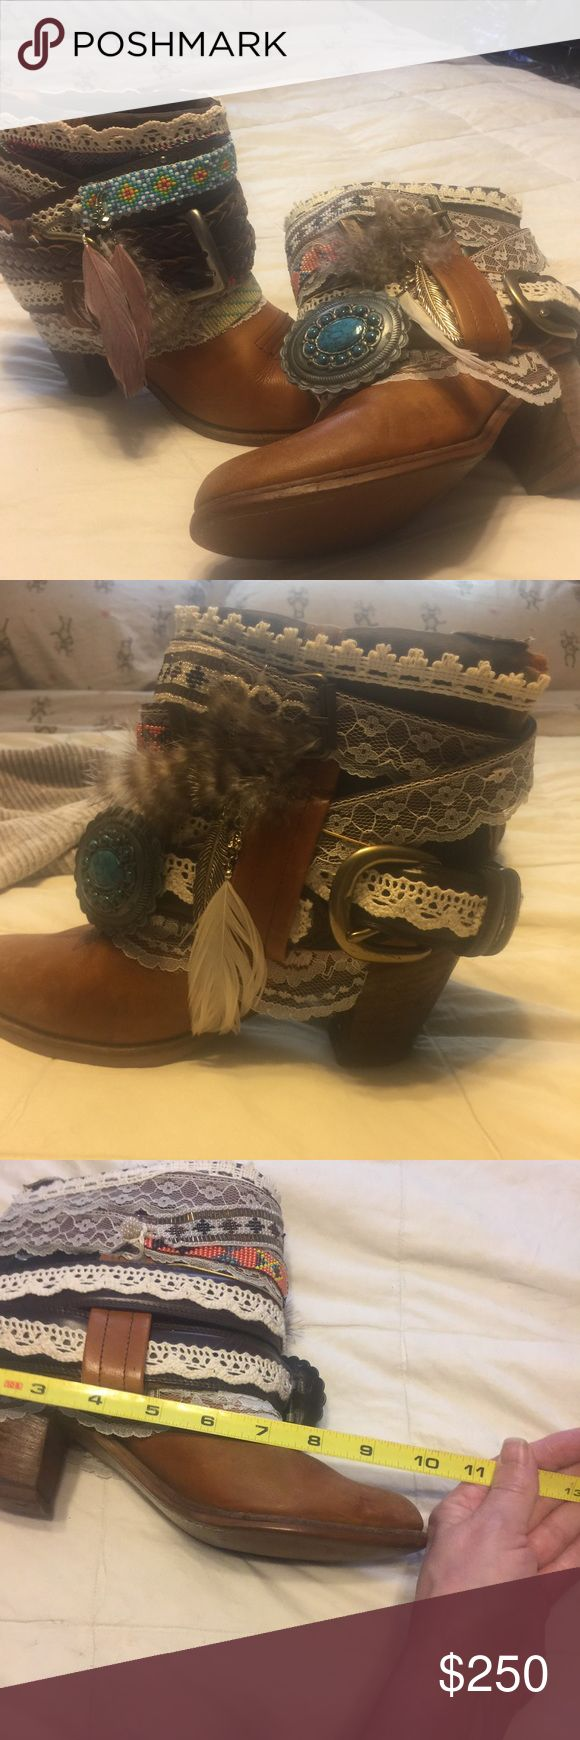 Amazing Customized Western Boots..One Of A Kind I had these ladies western boots customized with Belts, feathers, lace with turquoise accents.  I love these boots.  Paid $287 for boots and then another$259 to have customized.  Unfortunately my feet are swollen from medical treatments and I can not get my foot into them.  My loss your new treasure! Shoes Ankle Boots & Booties